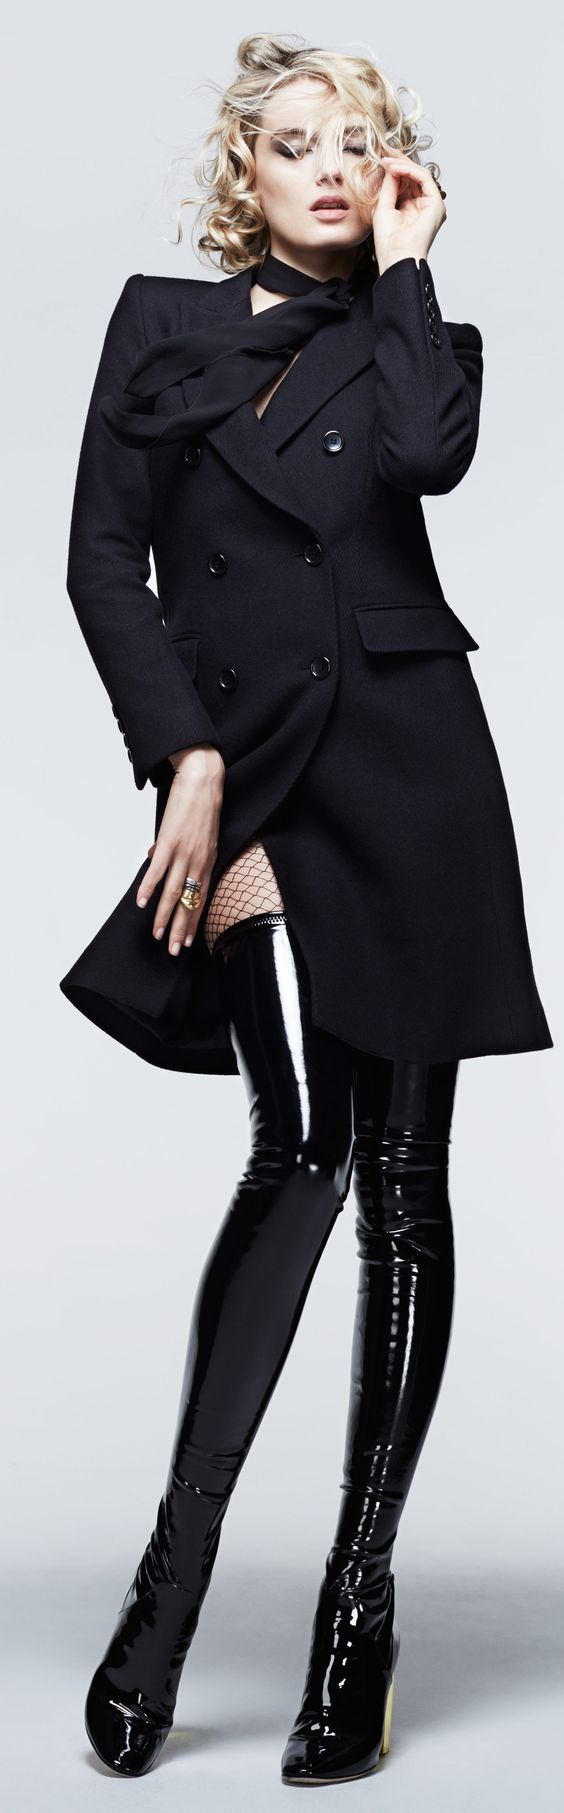 The classic style black coat brings Sophistication to this outfit and black tight latex boots with fishnet stockings are really modern, stylish and naughty twist.